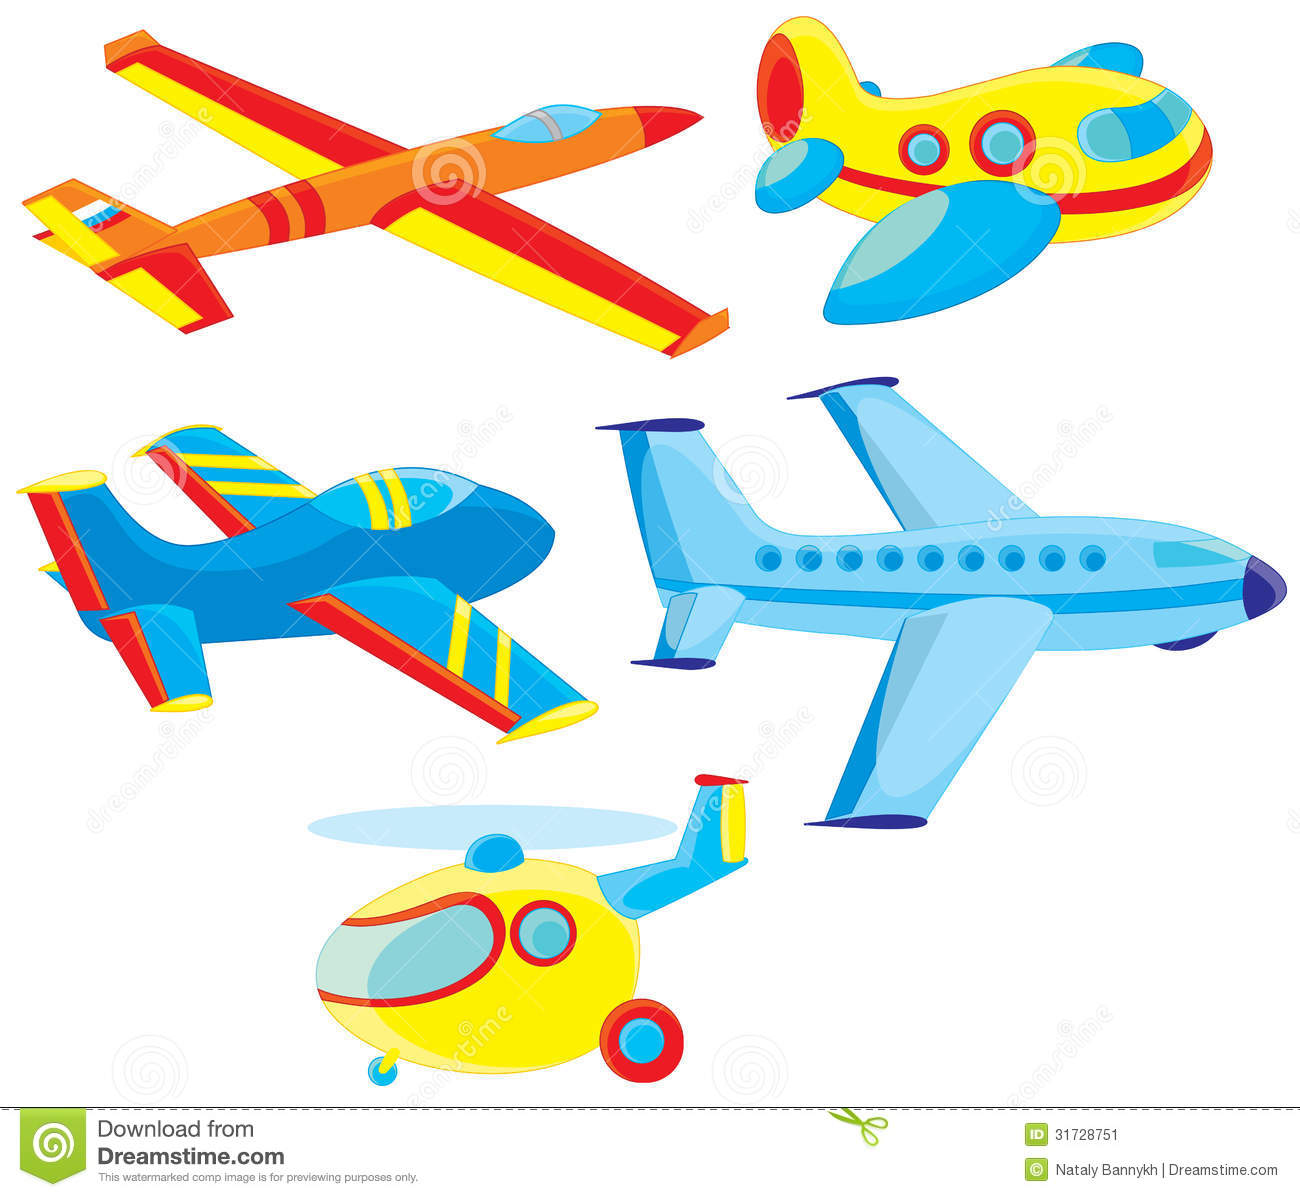 toys aeroplane with Stock Image Airplanes Helicopter Set Toy Vector Clip Arts White Background Image31728751 on Straws Circle Paper Planes S T E M Kids as well Ridingairplane in addition Watch in addition Watch furthermore Plane Star Crusher.